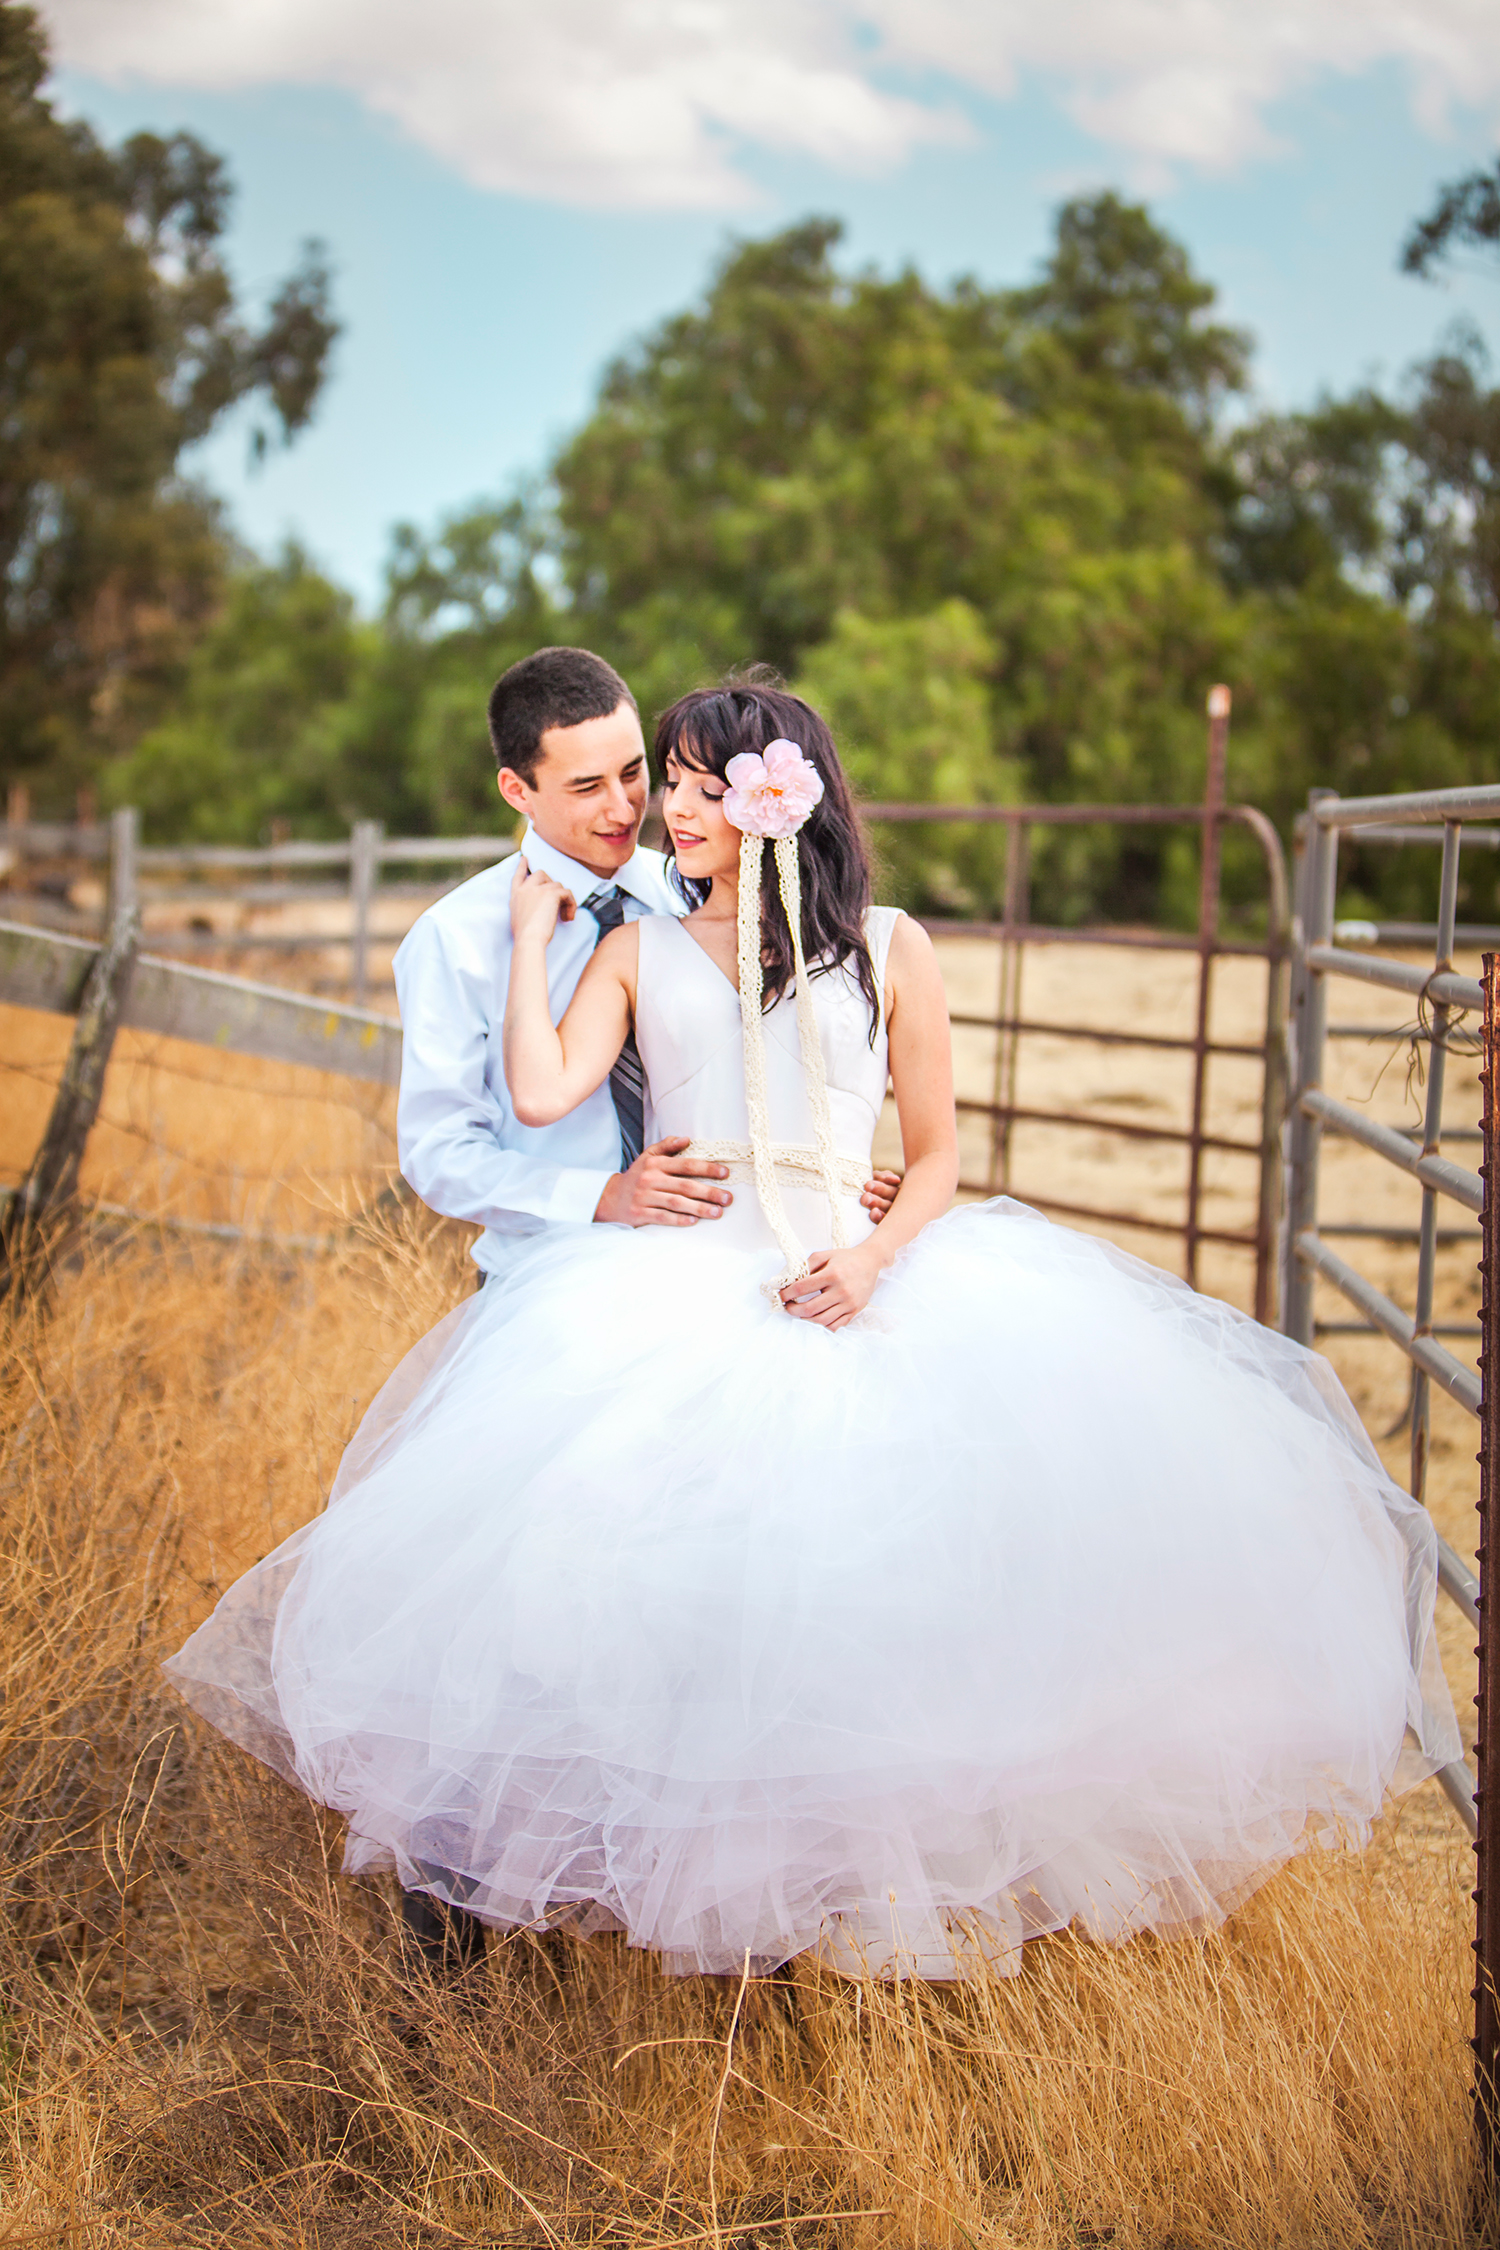 Dena_Rooney_Wedding_Photographer_Ranch_012.jpg